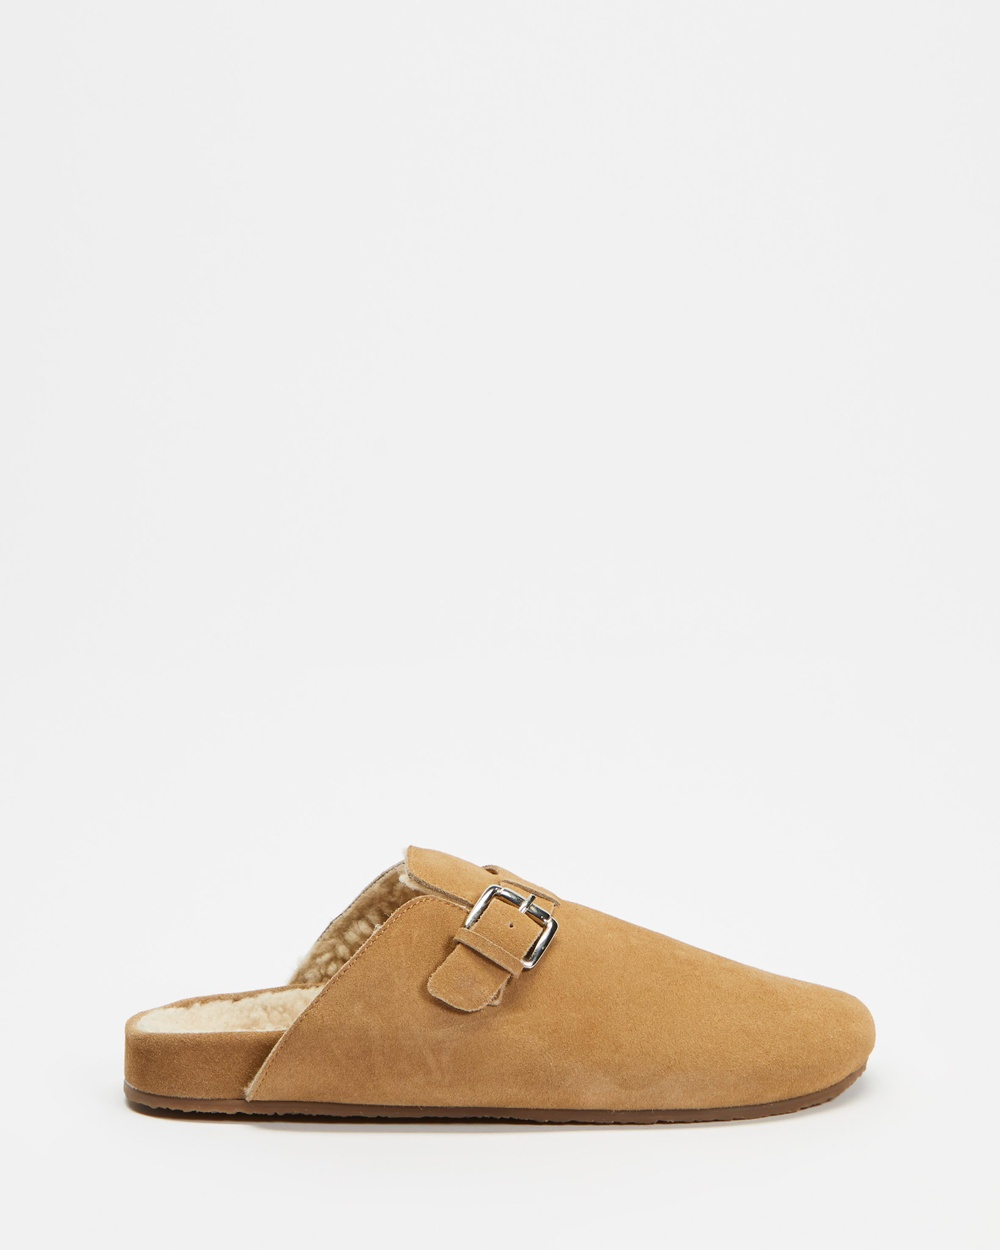 AERE Buckled Suede Clog Mules Clogs Sand Suede